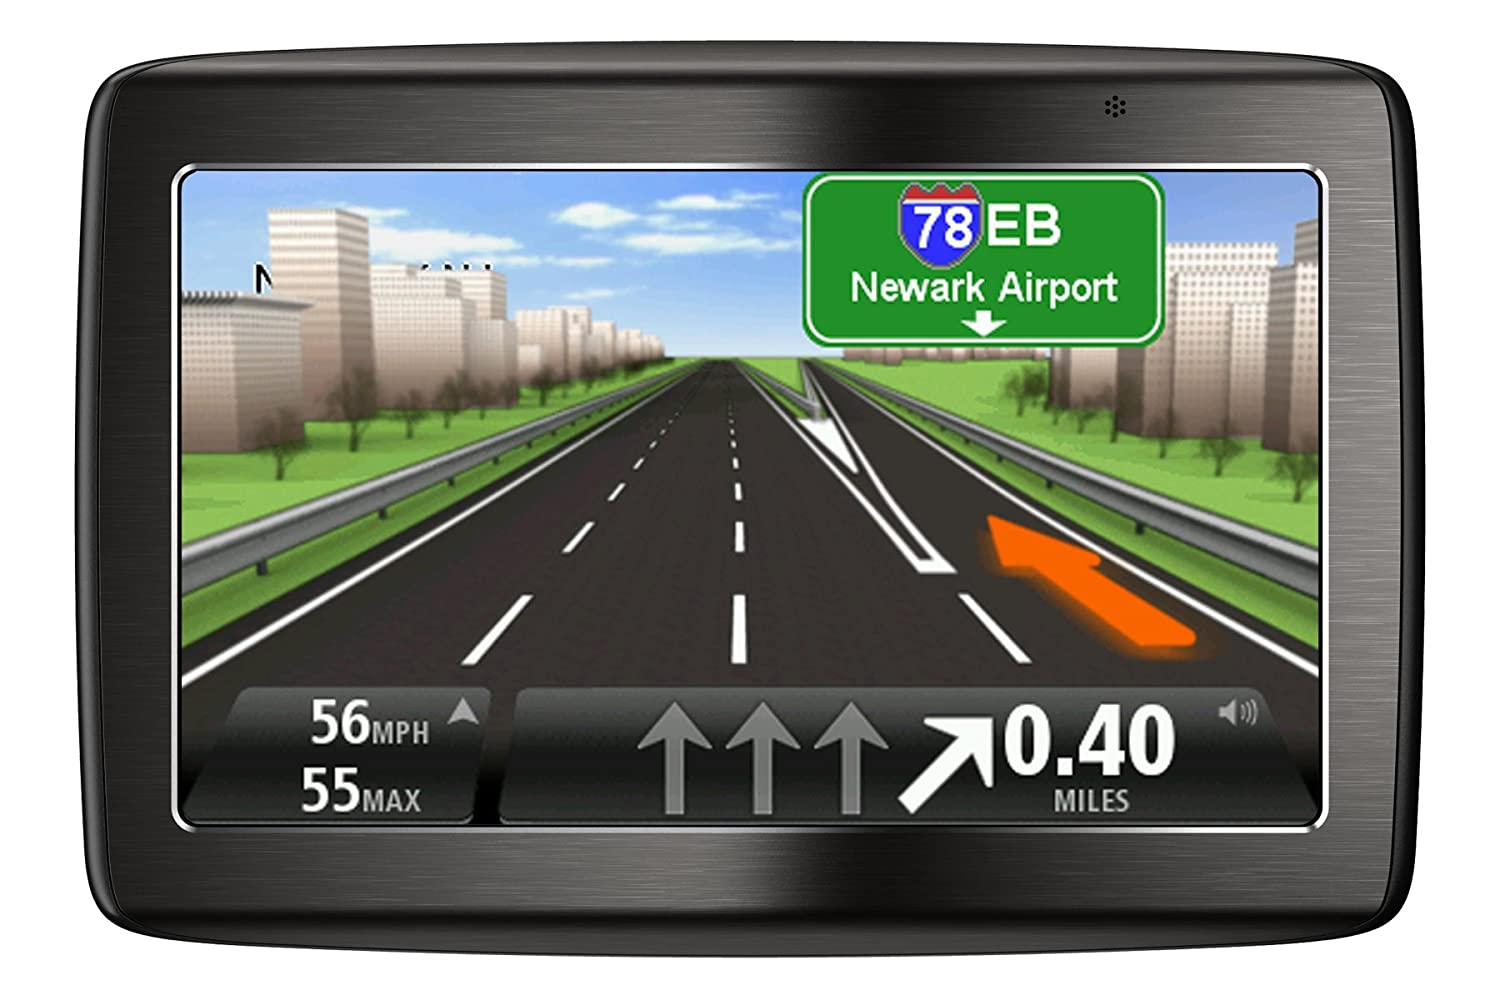 Vehicle GPS Amazoncom - Tomtom gps usa map download free